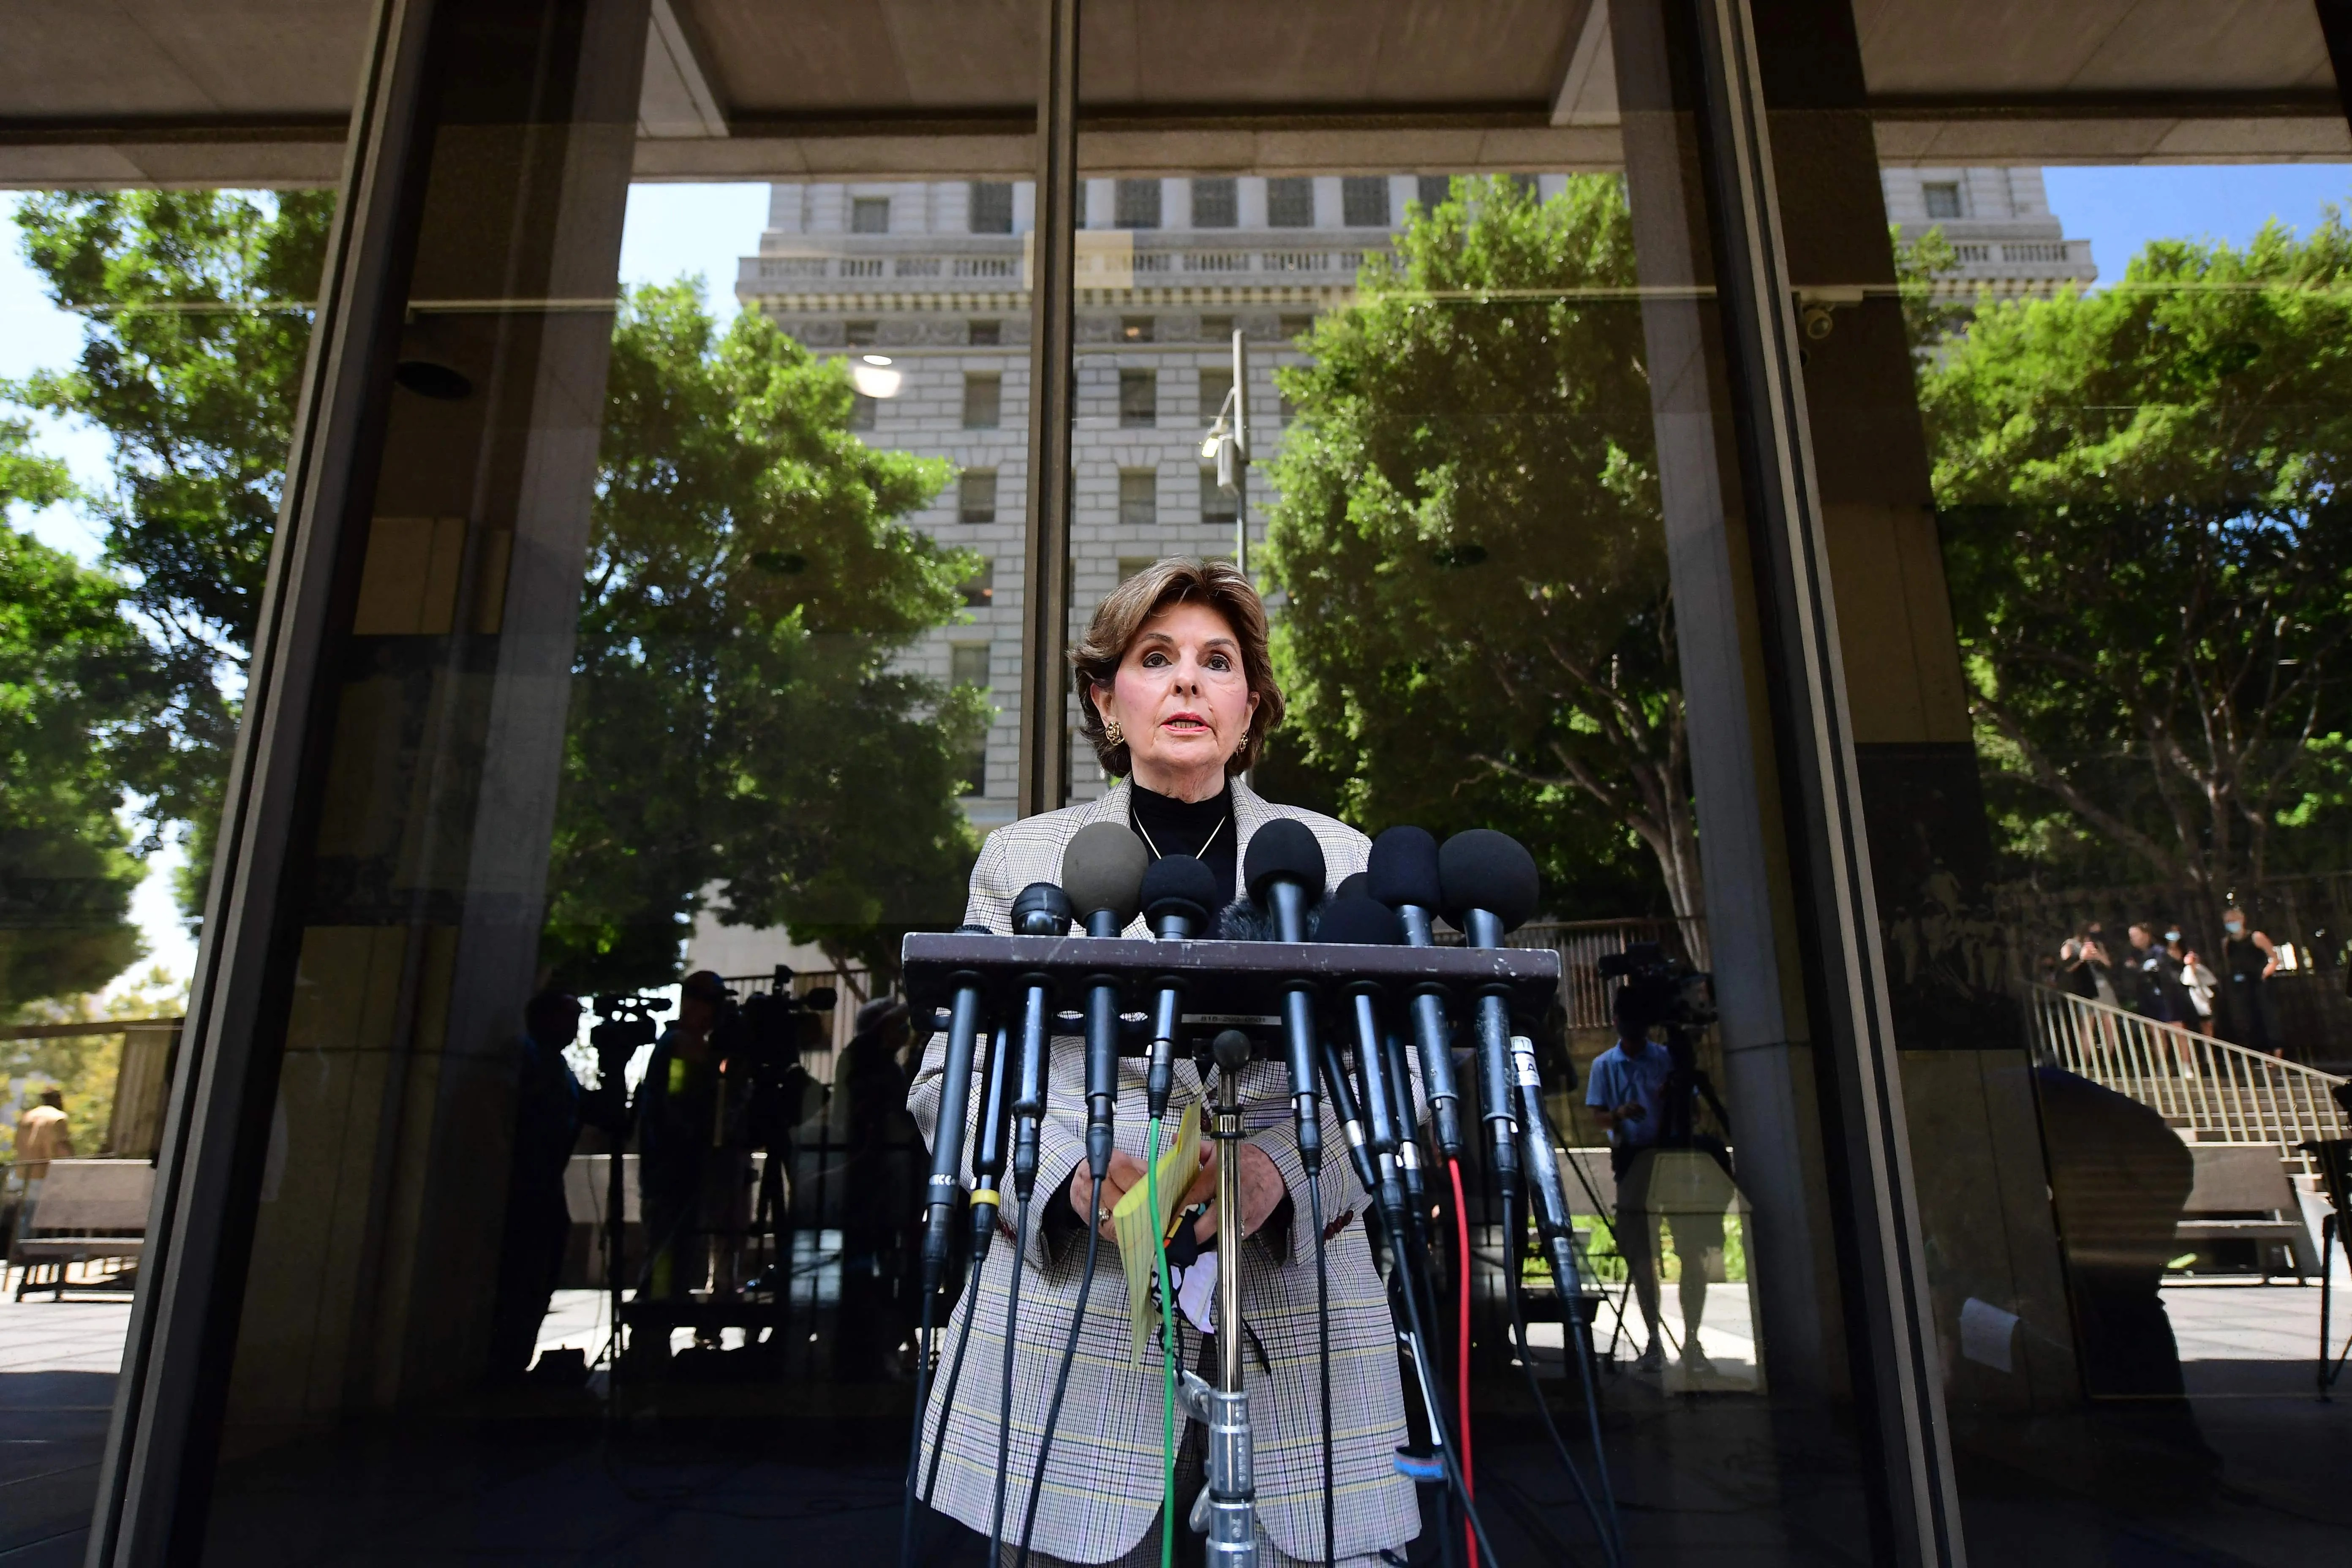 Attorney Gloria Allred, who represents some of Harvey Weinstein's accusers, addresses the press in court on July 21, 2021, after Weinstein pleaded not guilty to sex crimes charges in Los Angeles.